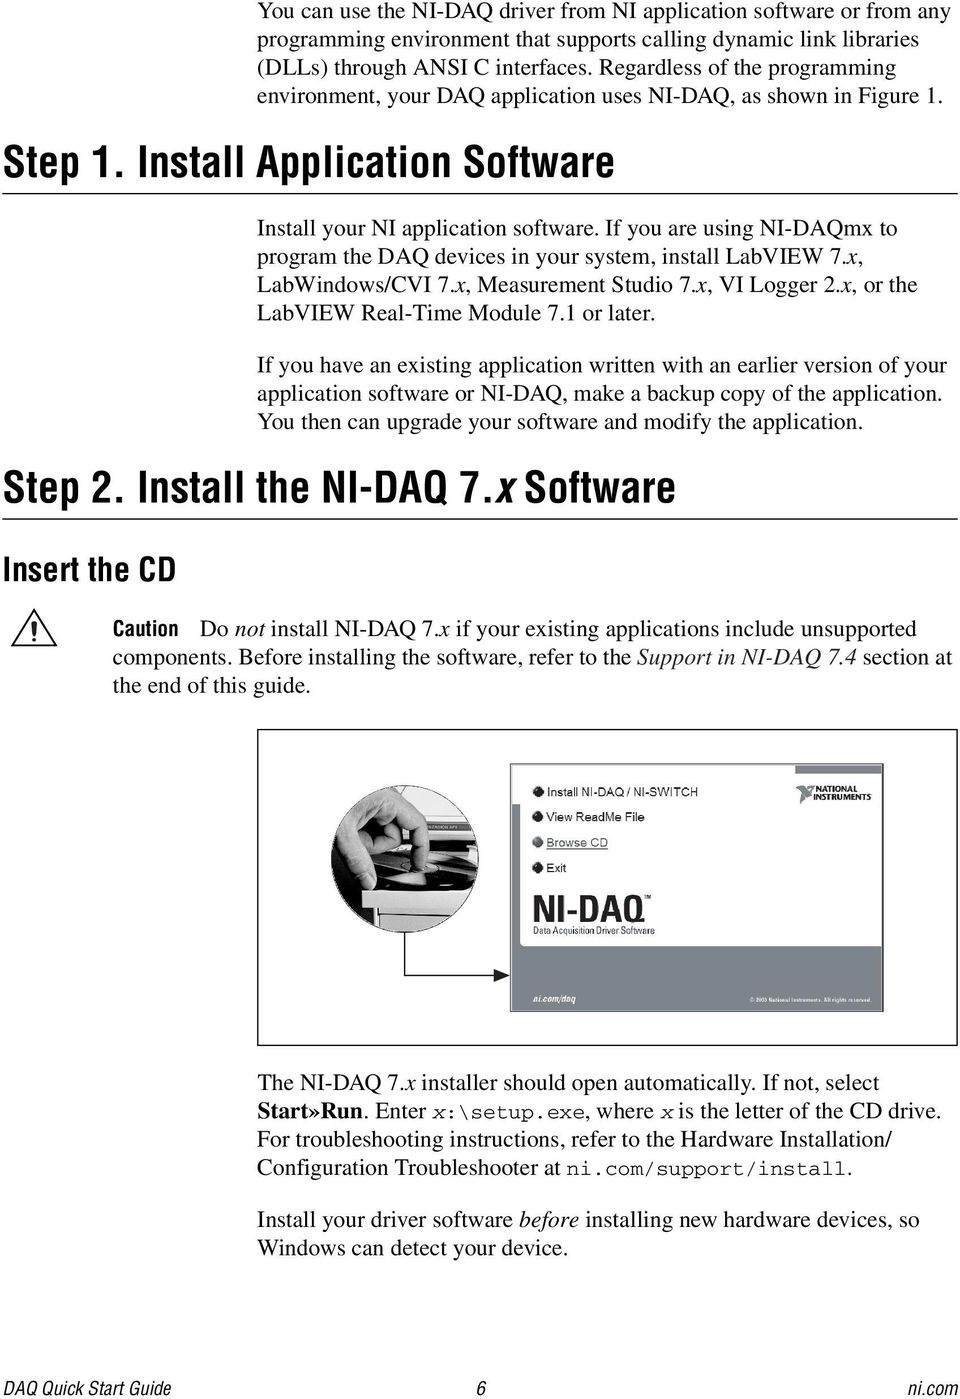 DAQ Quick Start Guide - PDF Free Download